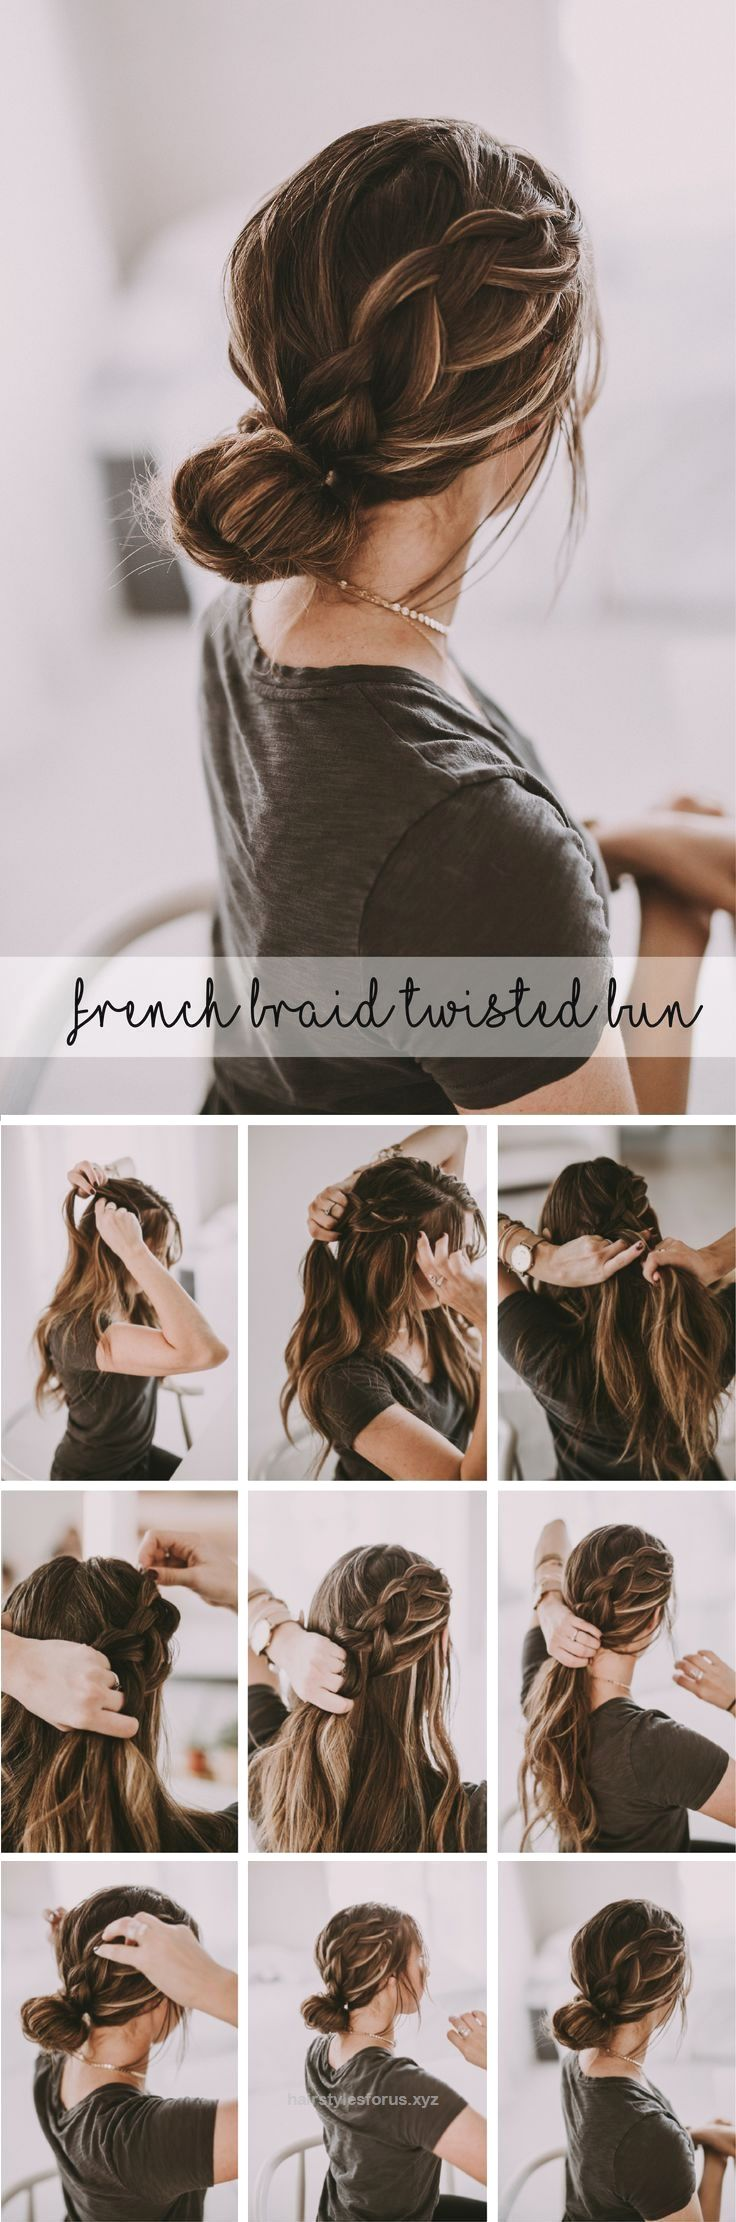 Awesome Beautiful french braid twisted bun updo hairstyle Perfect